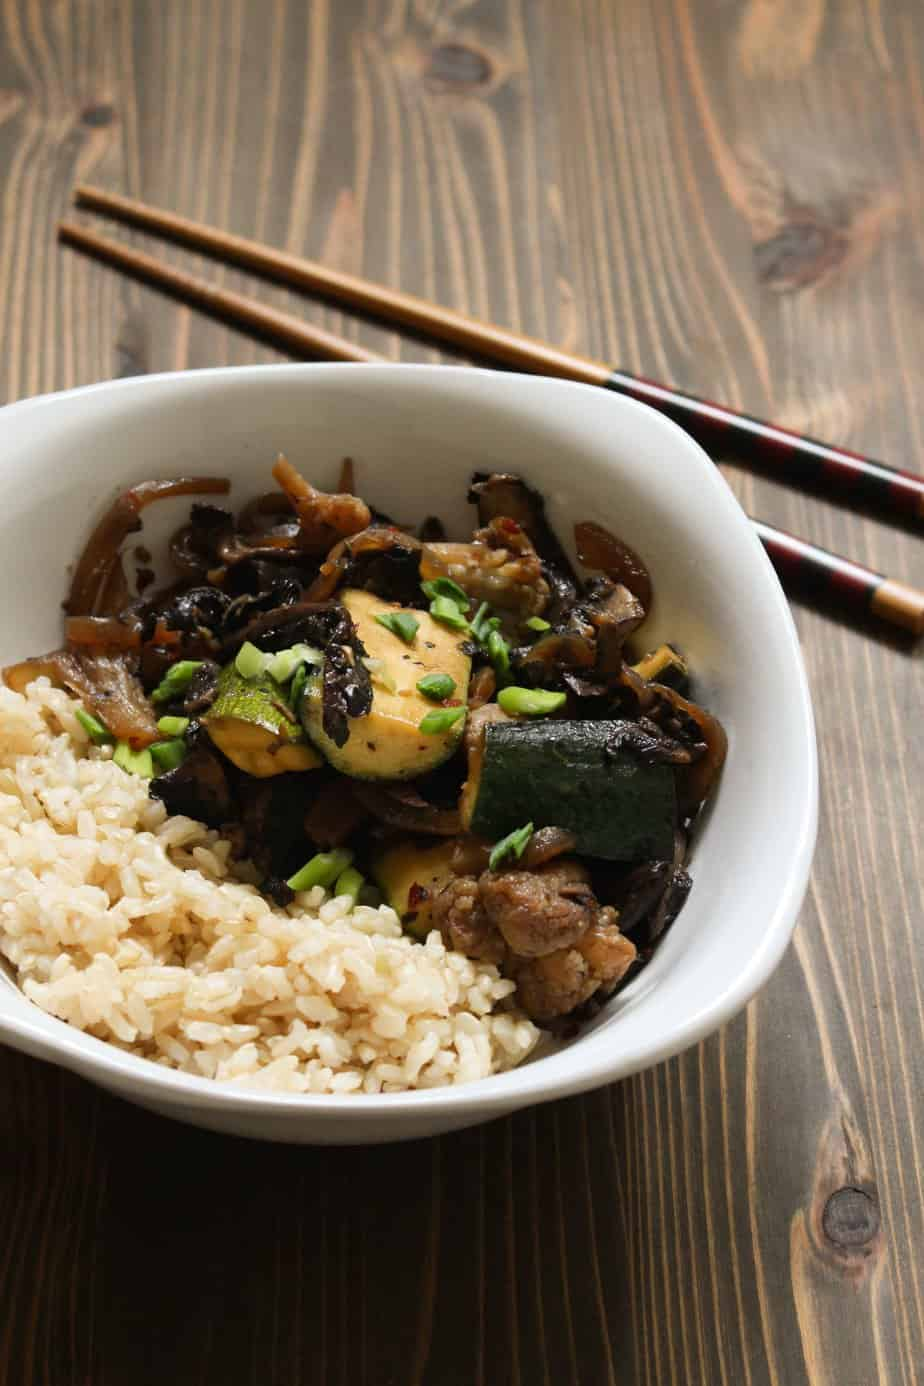 Easy Lunch or Dinner - Vegan Stir Fry with Portobellos and Zucchini | FrugalNutrition.com